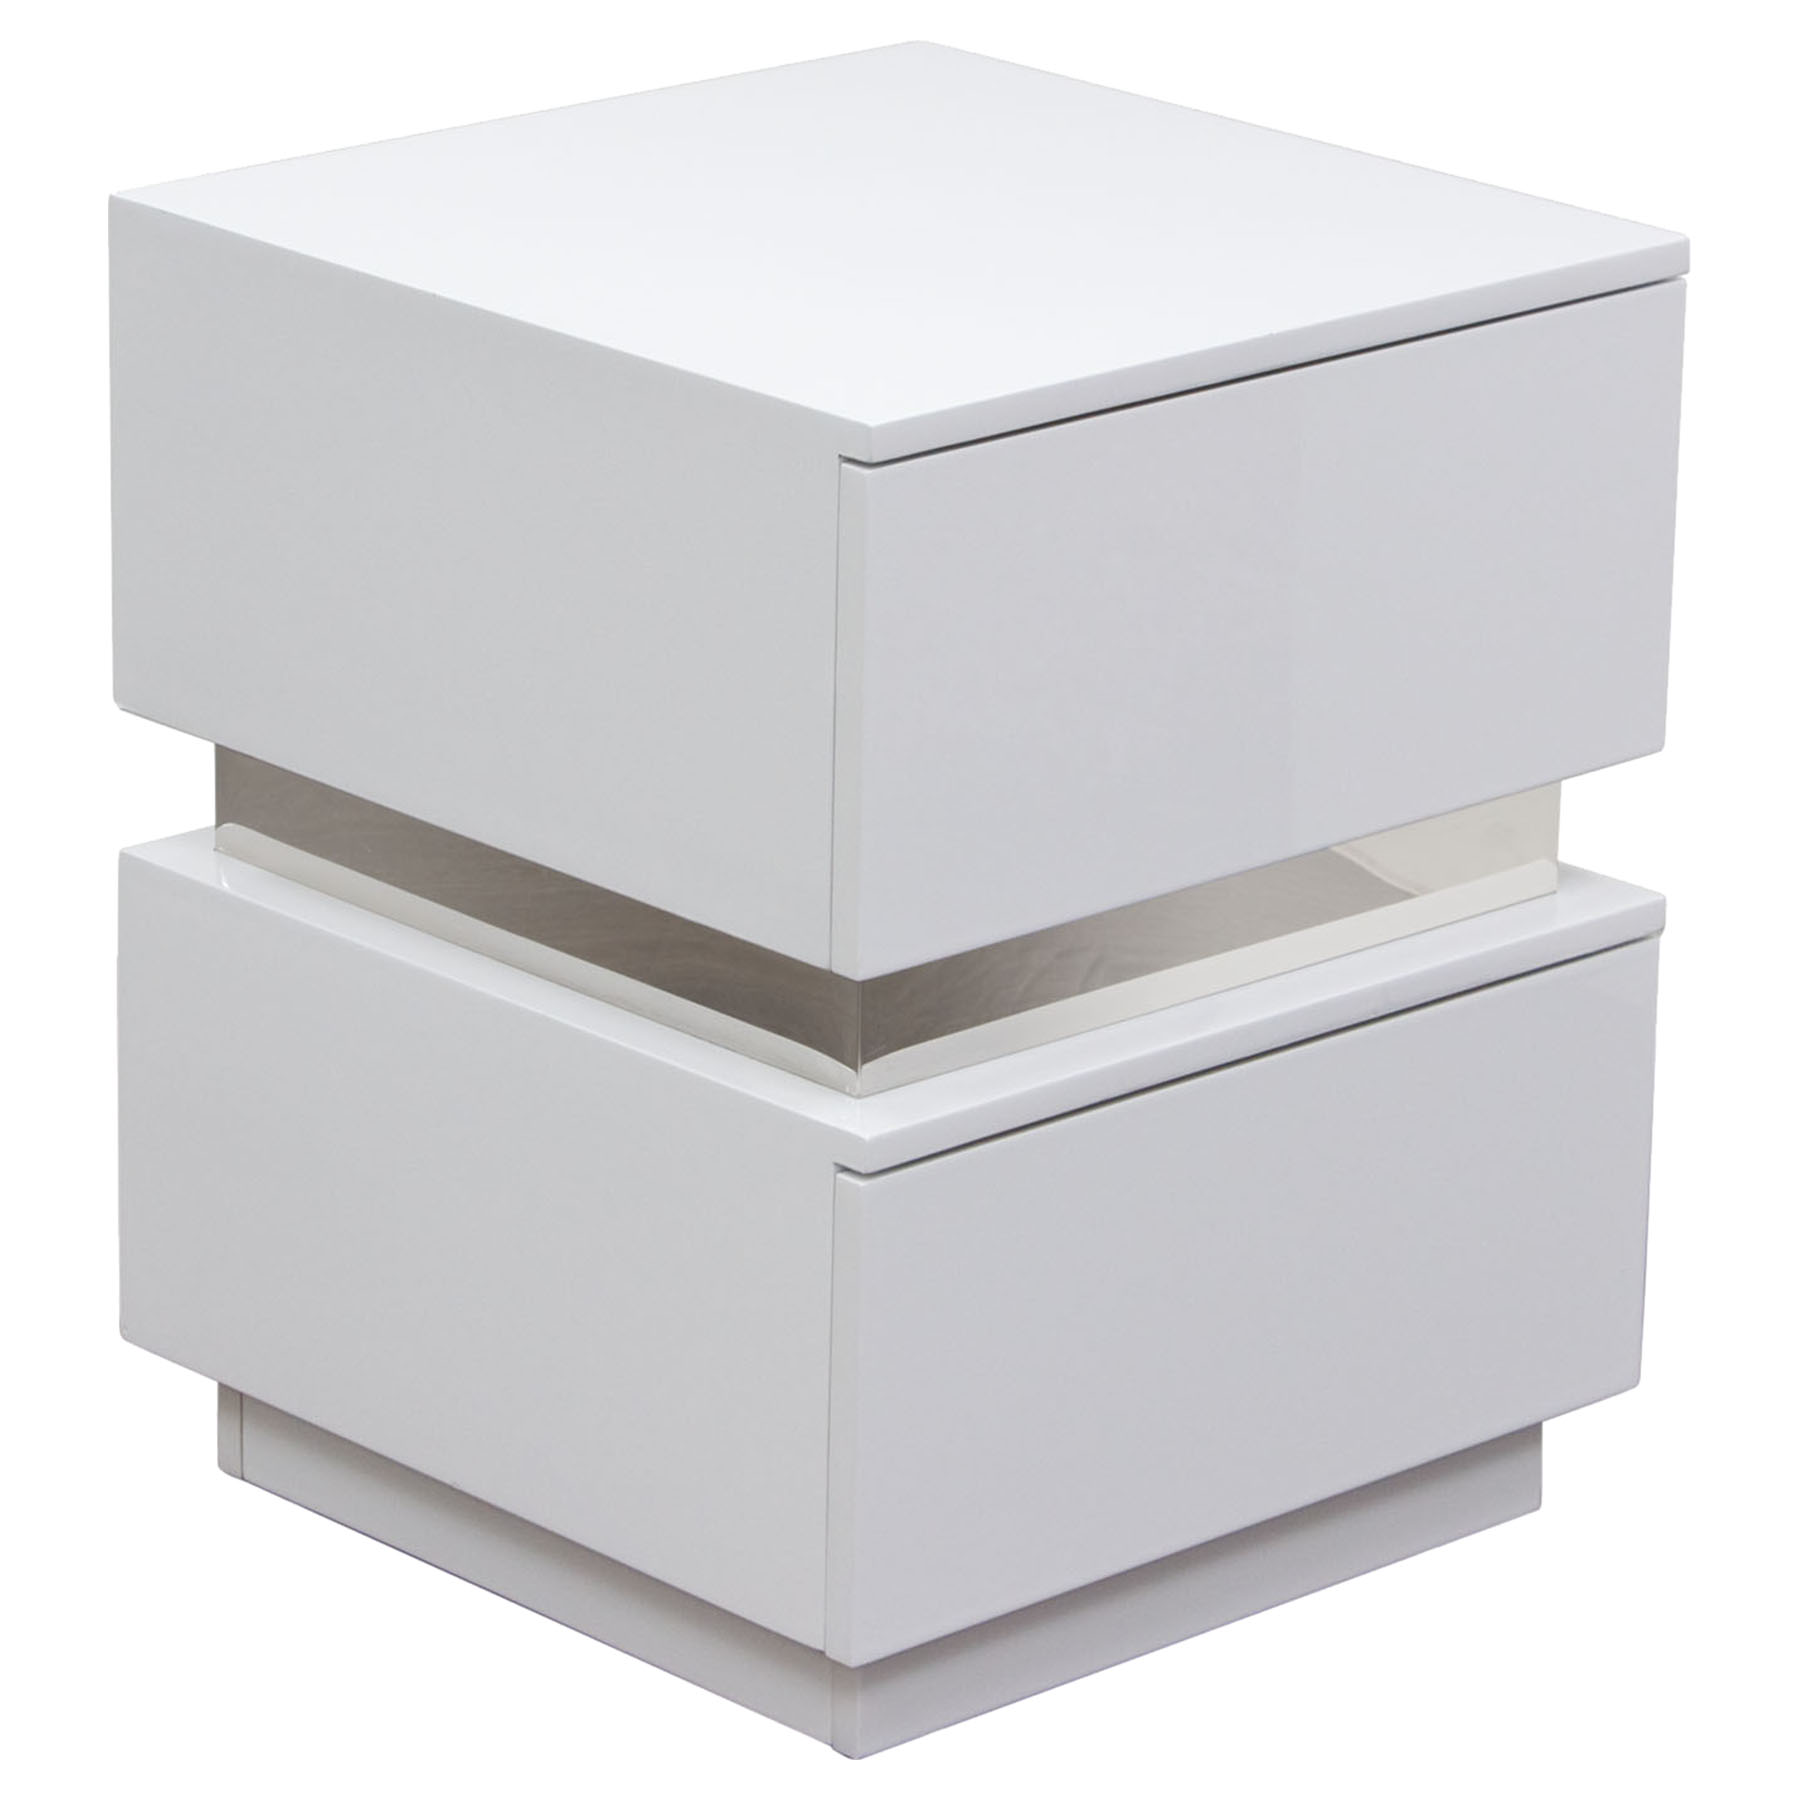 elle drawers accent table high gloss white dcg ellenswh lamps plus tables ceramic end stool live edge wood coffee tile top garden nice pink lamp shade retro furniture modern